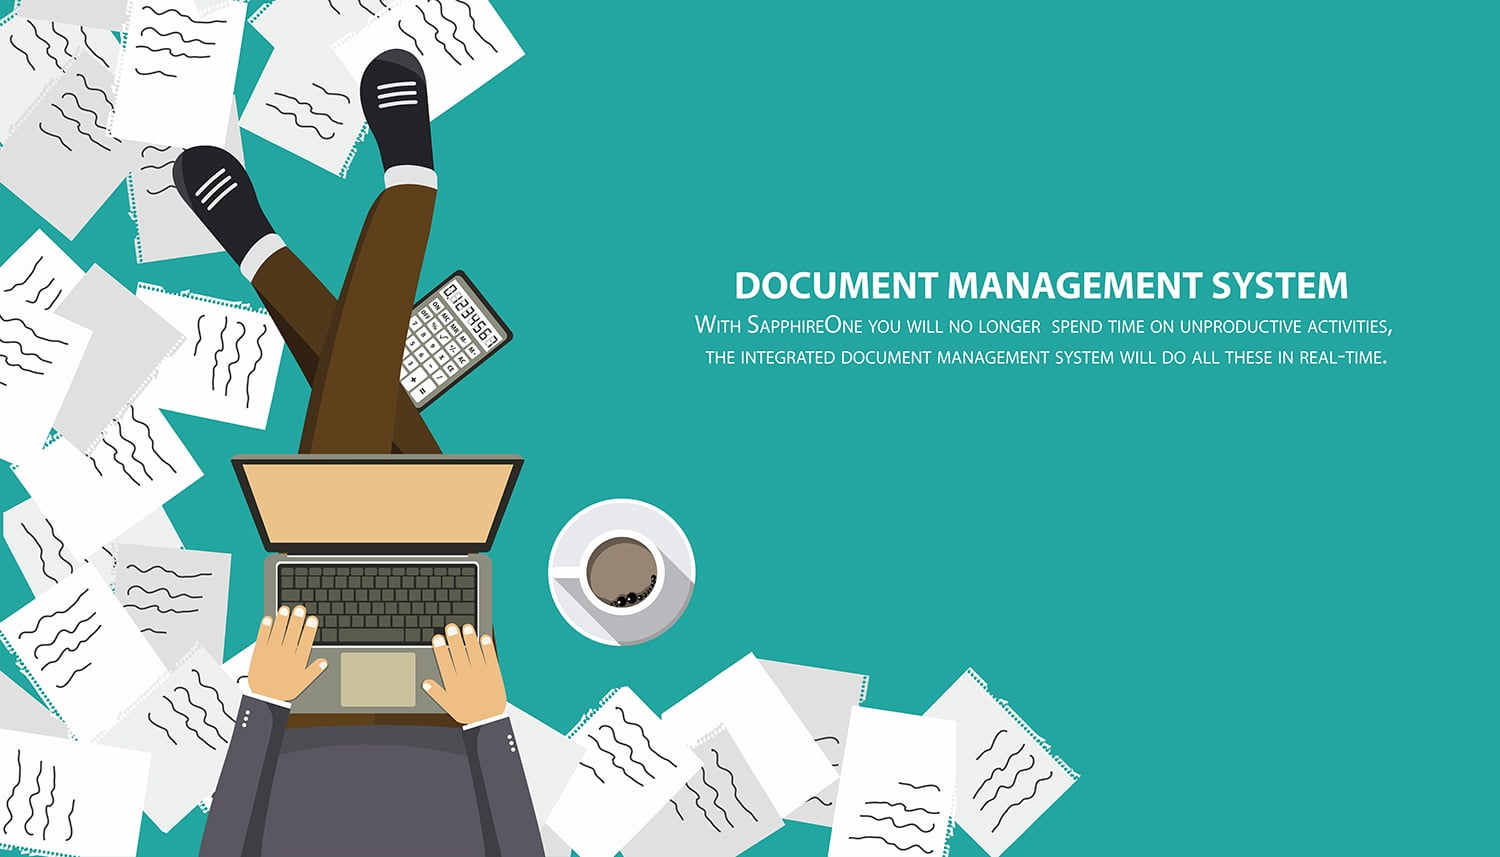 There are lots of Benefits of Integrated Document Management System like SapphireOne ERP